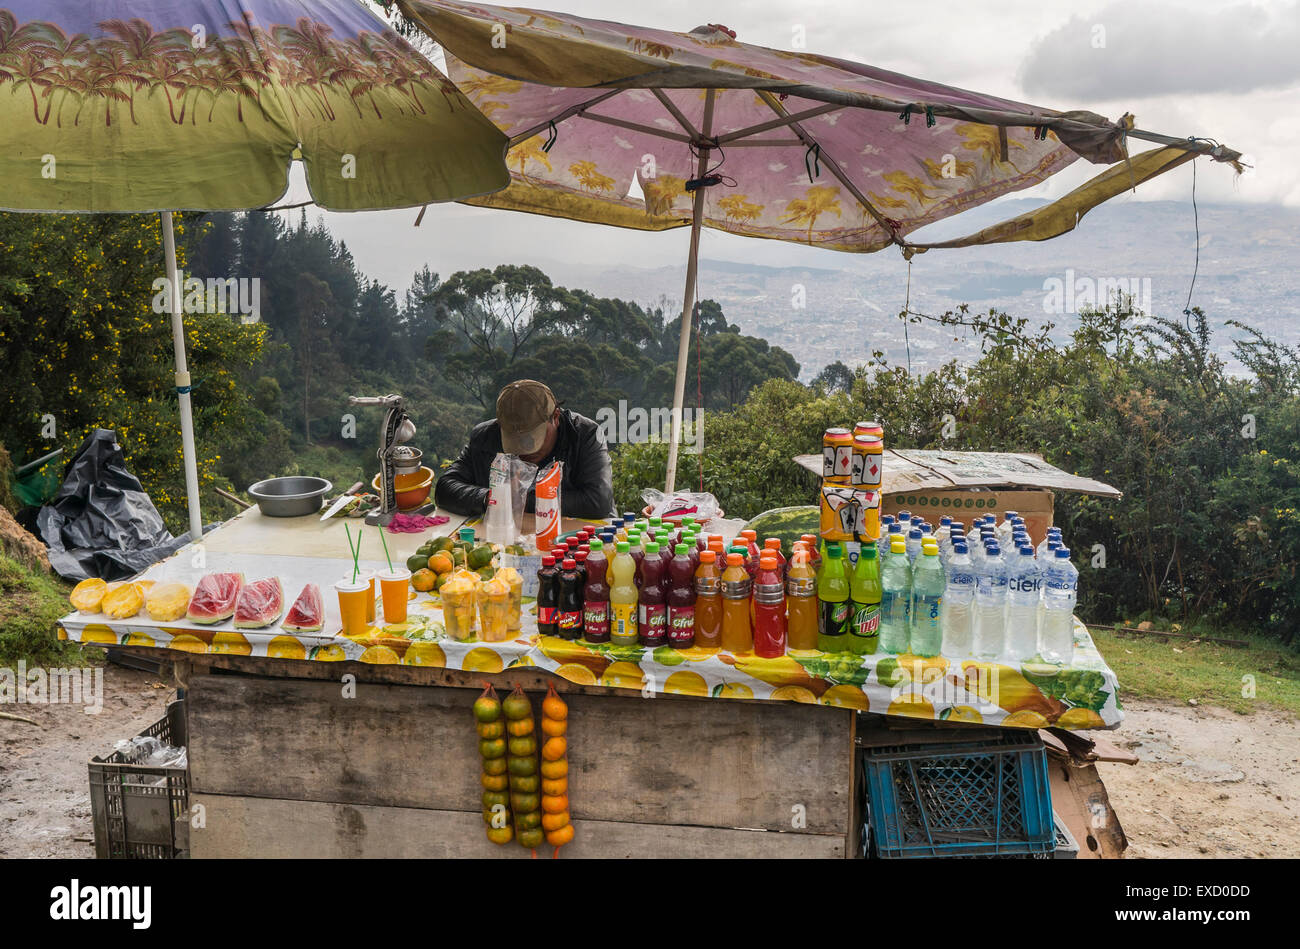 A street vendor asleep in his chair along the popular trail to the top of Cerro Monserrate in Bogota, Colombia. - Stock Image